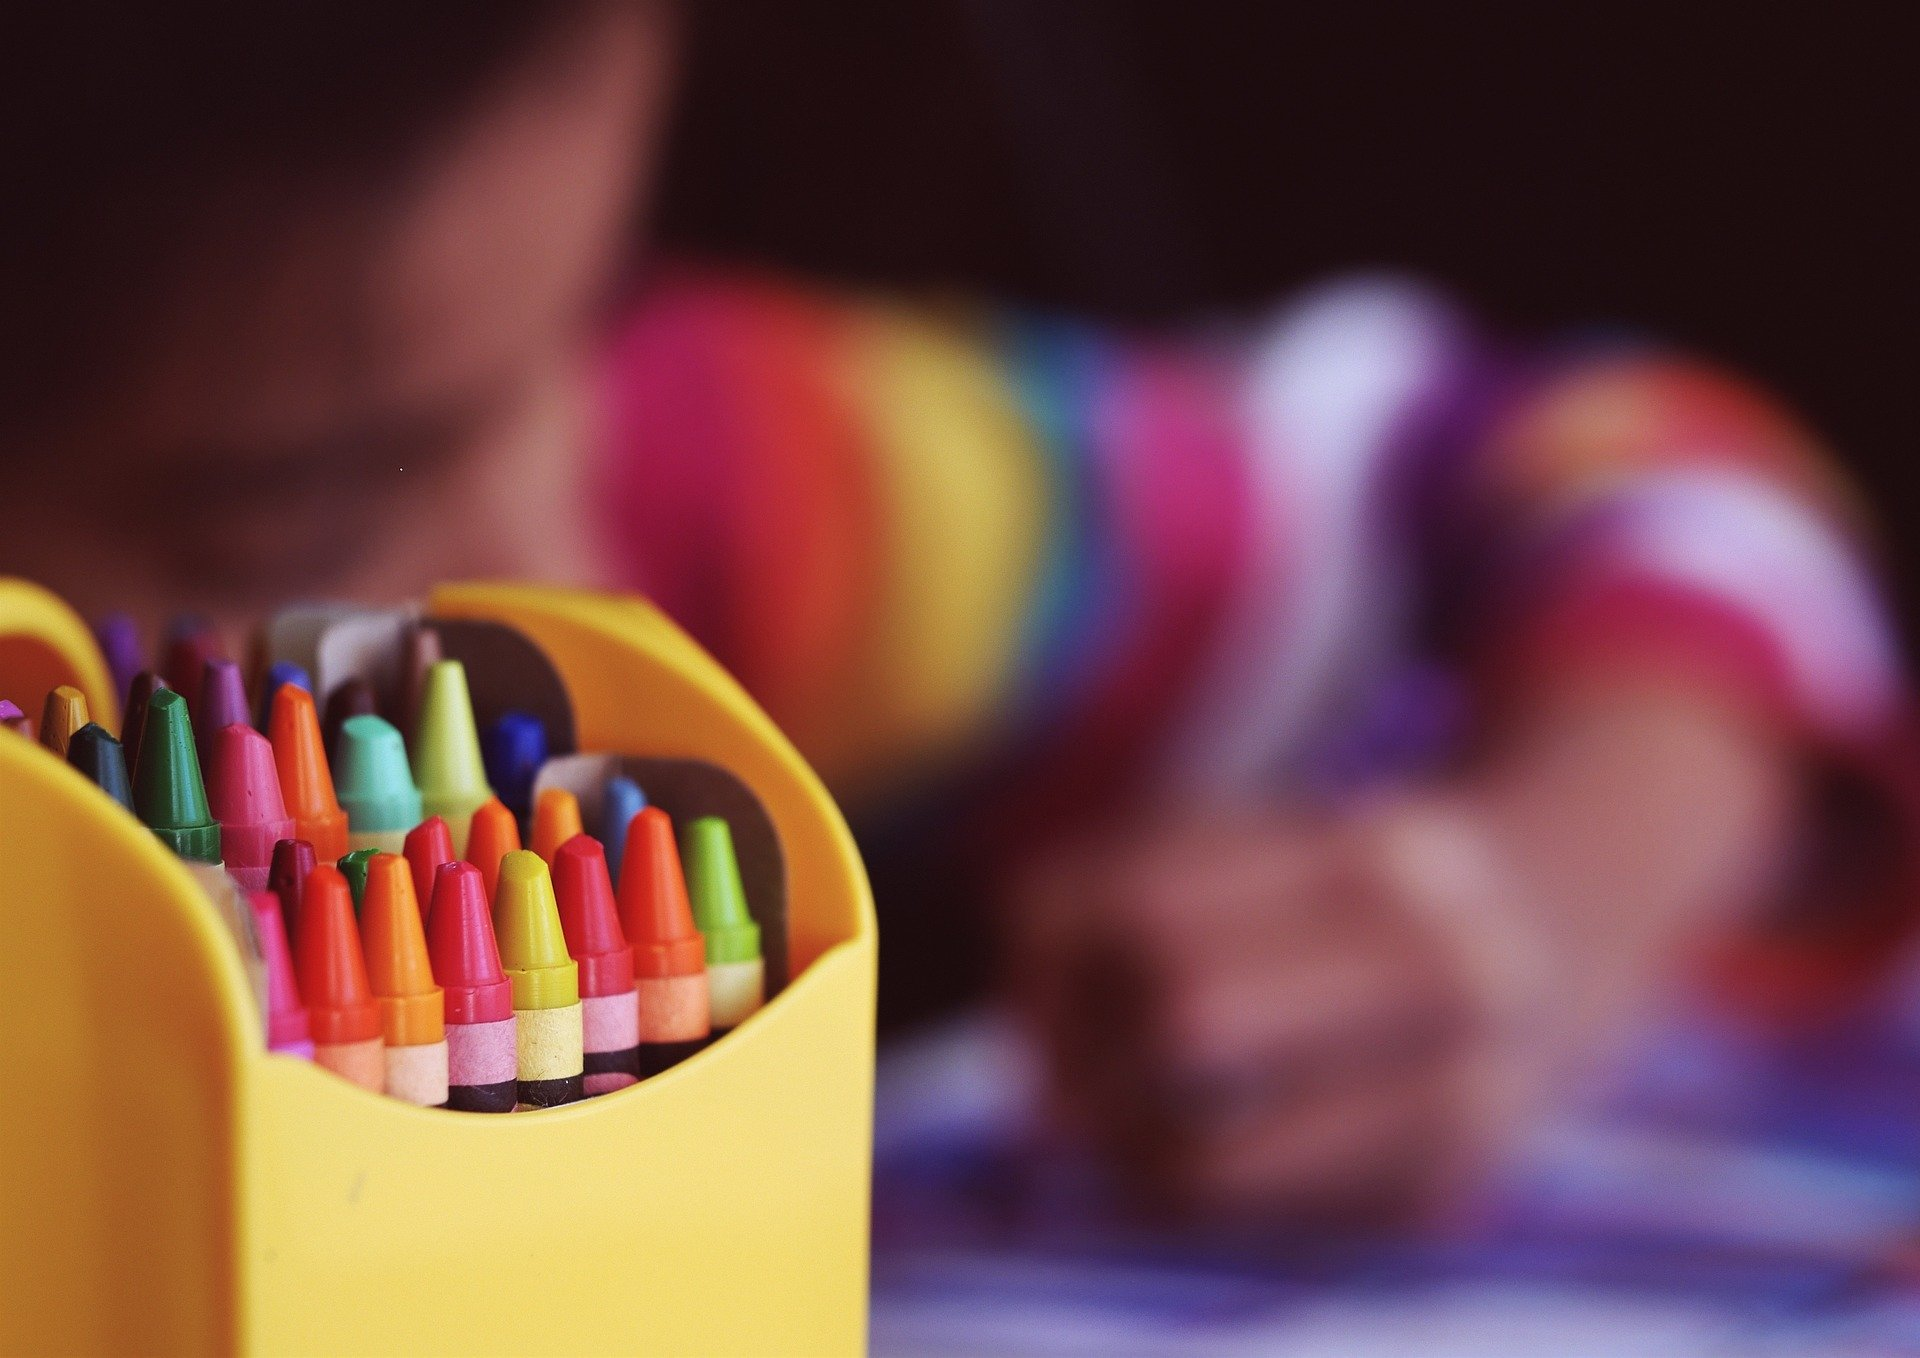 Box of crayons in foreground with child colouring in the background